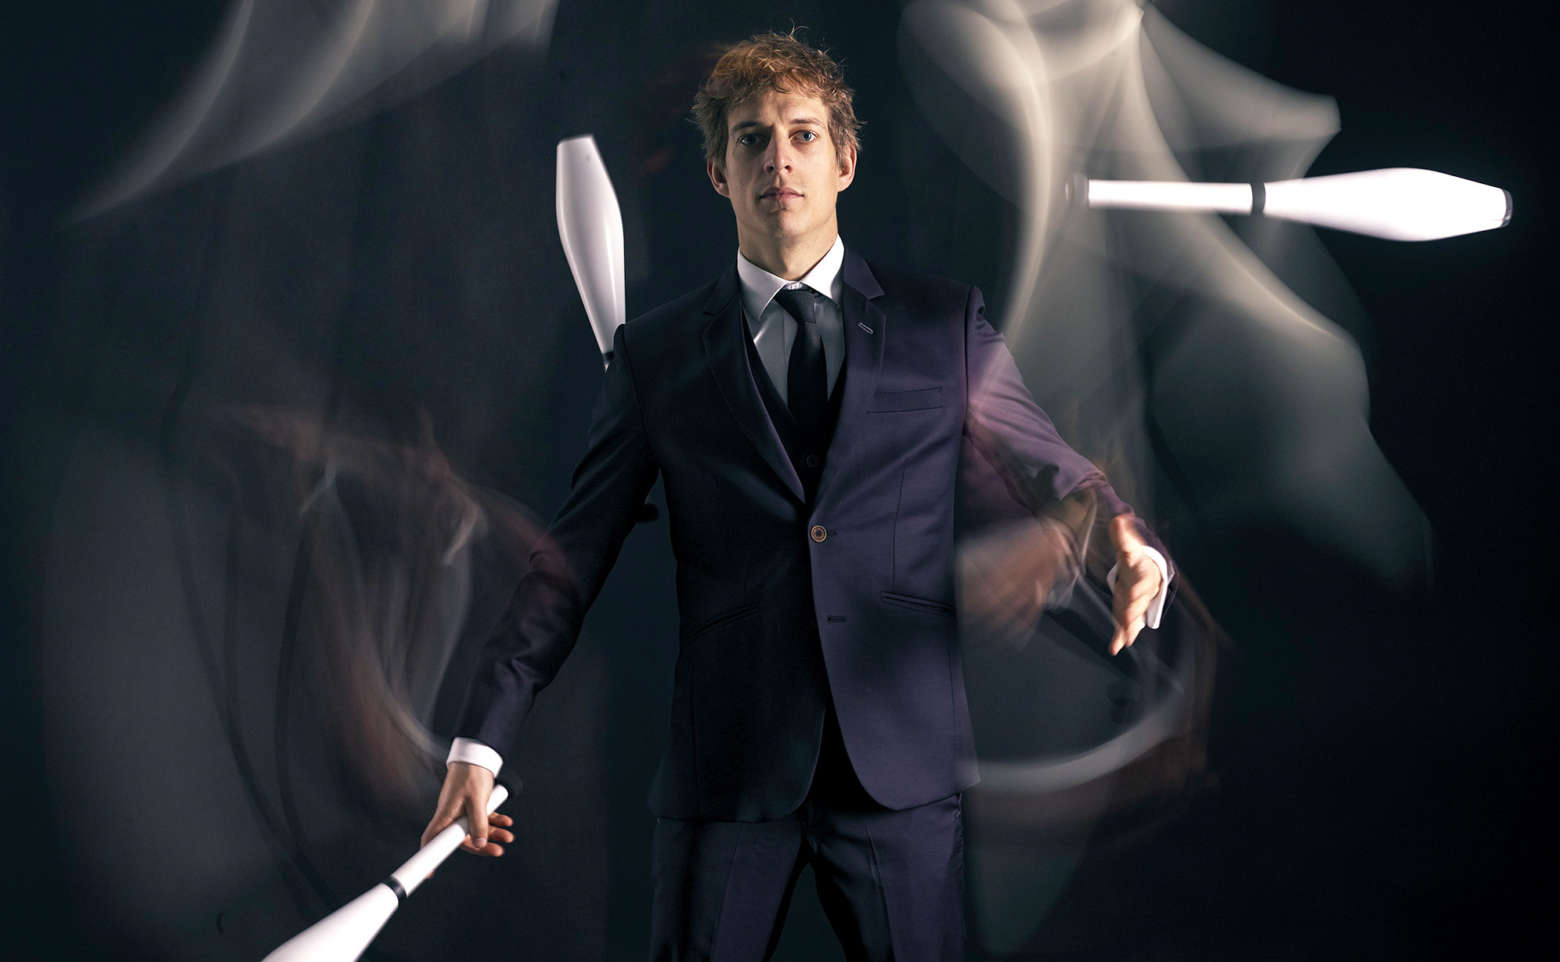 The comedy juggler promo shot